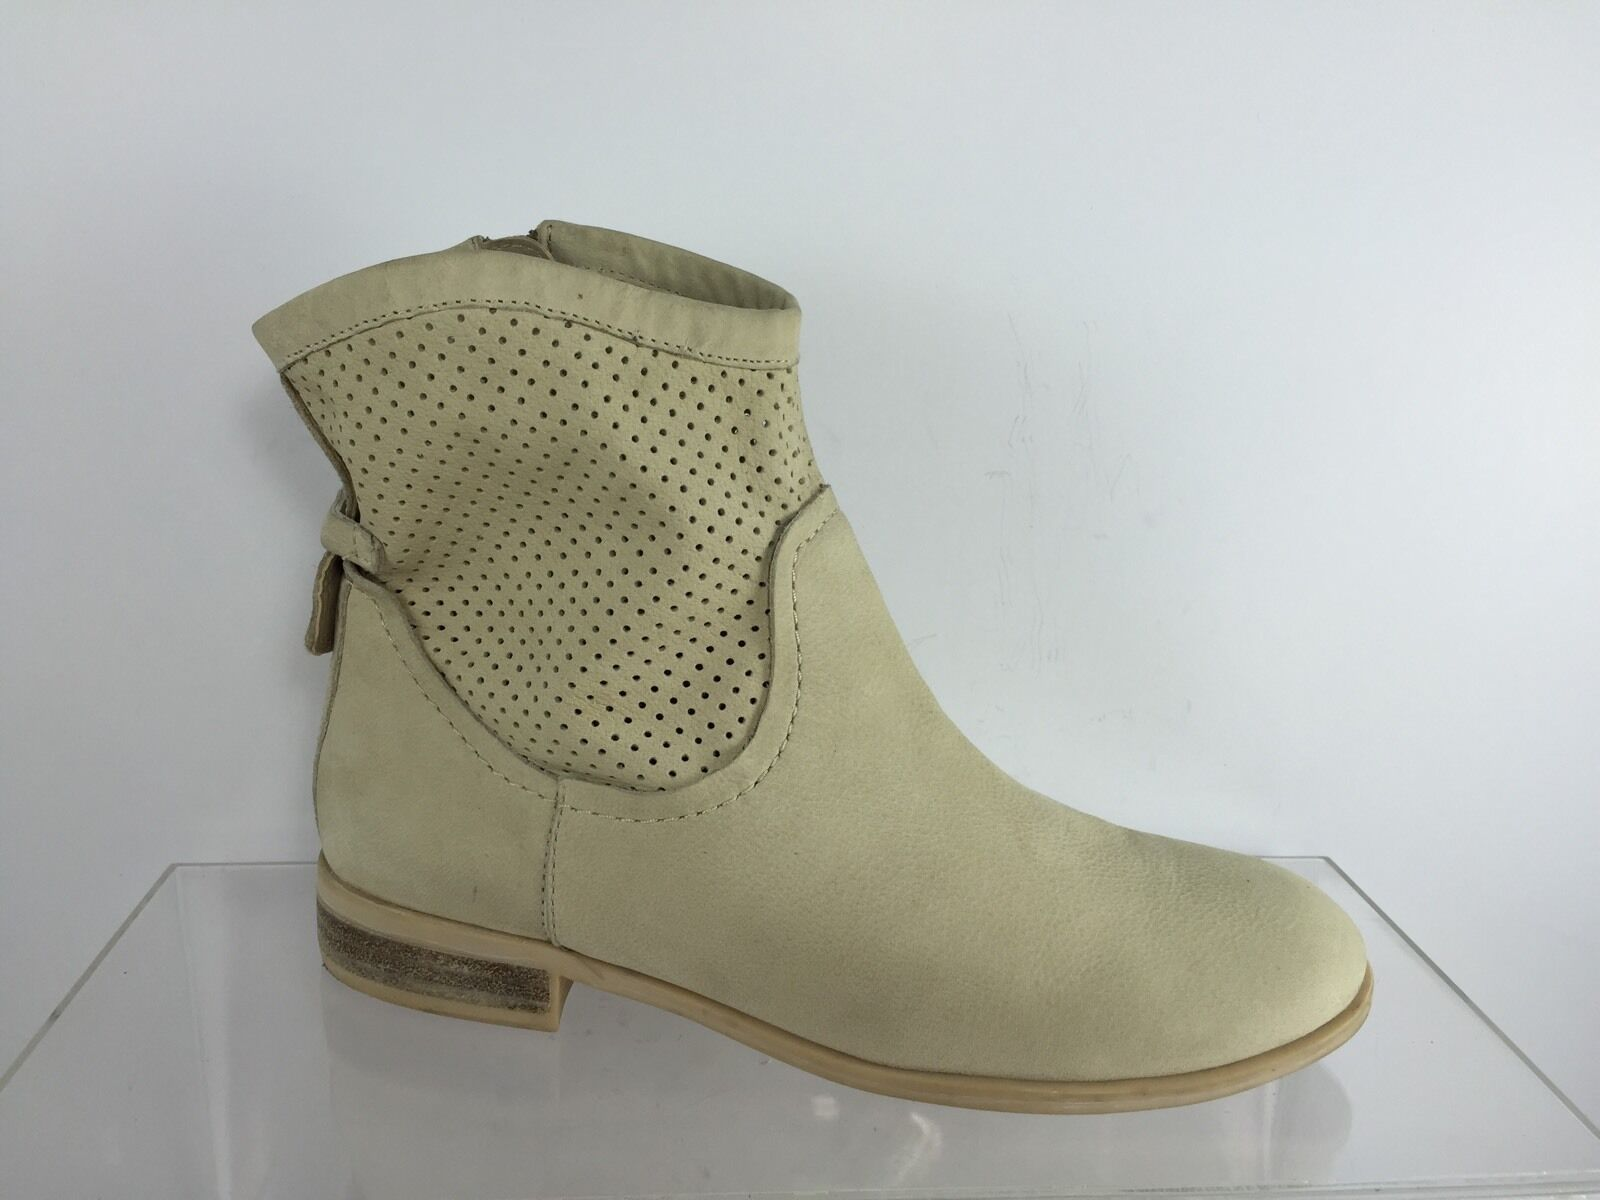 Franco Sarto Womens Ivory Leather Ankle Boots 5.5 M